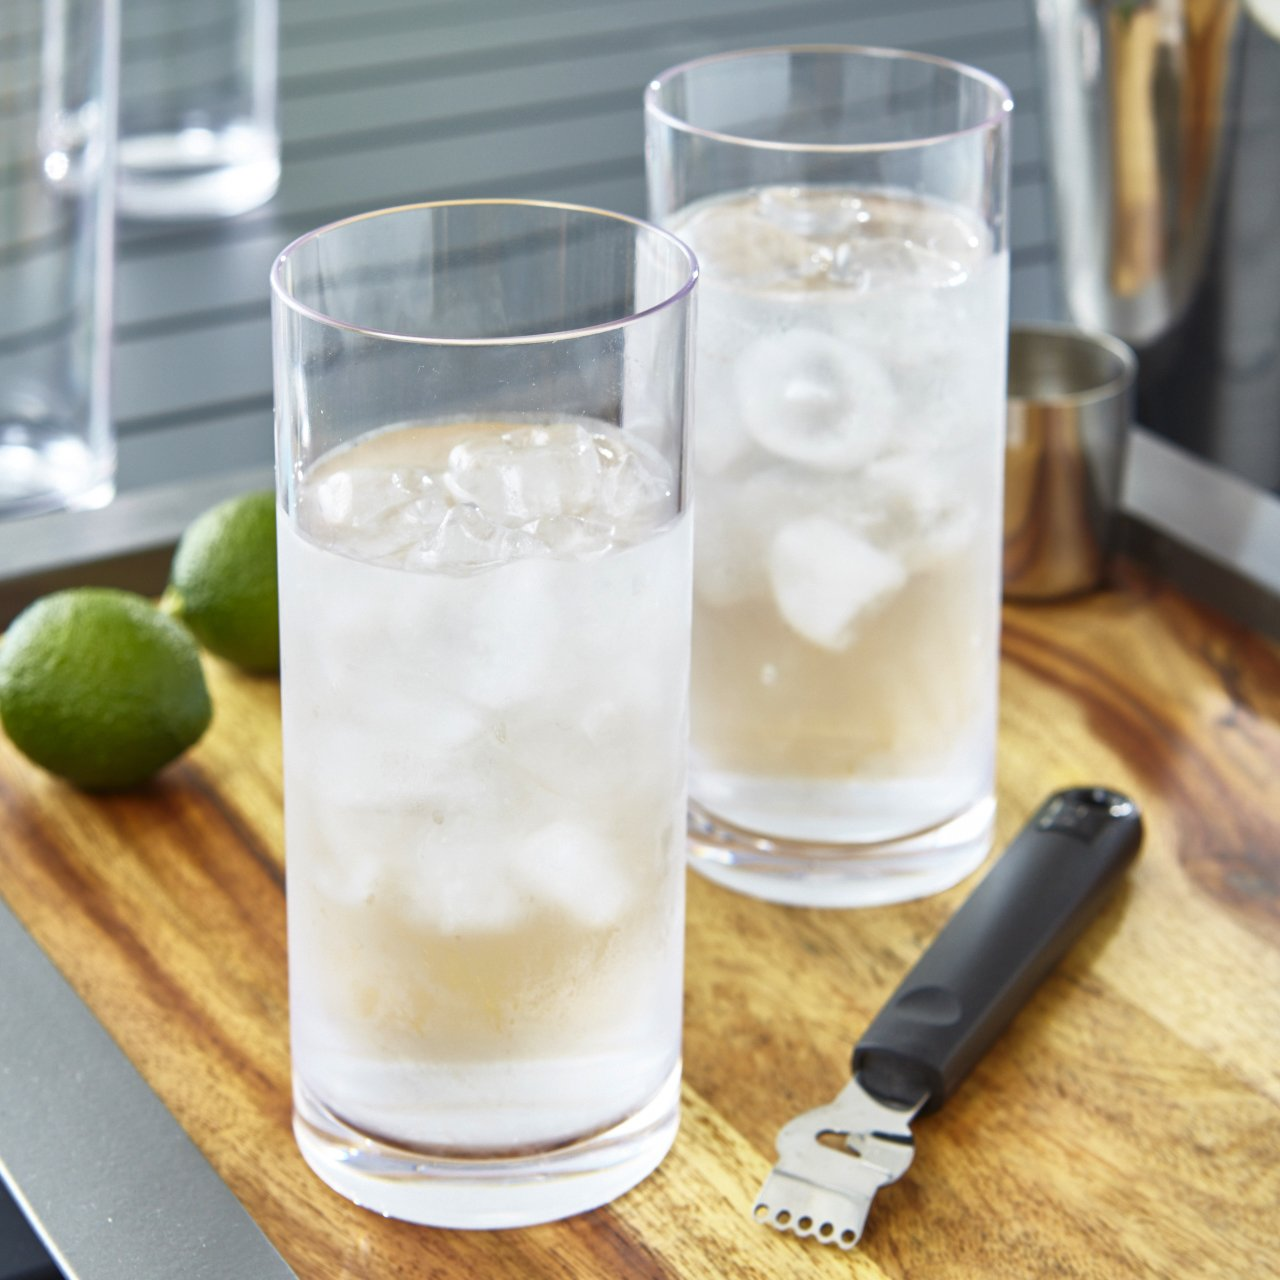 Classic 16-ounce Premium Quality Plastic Water Tumbler | Clear Set of 6 by US Acrylic (Image #2)